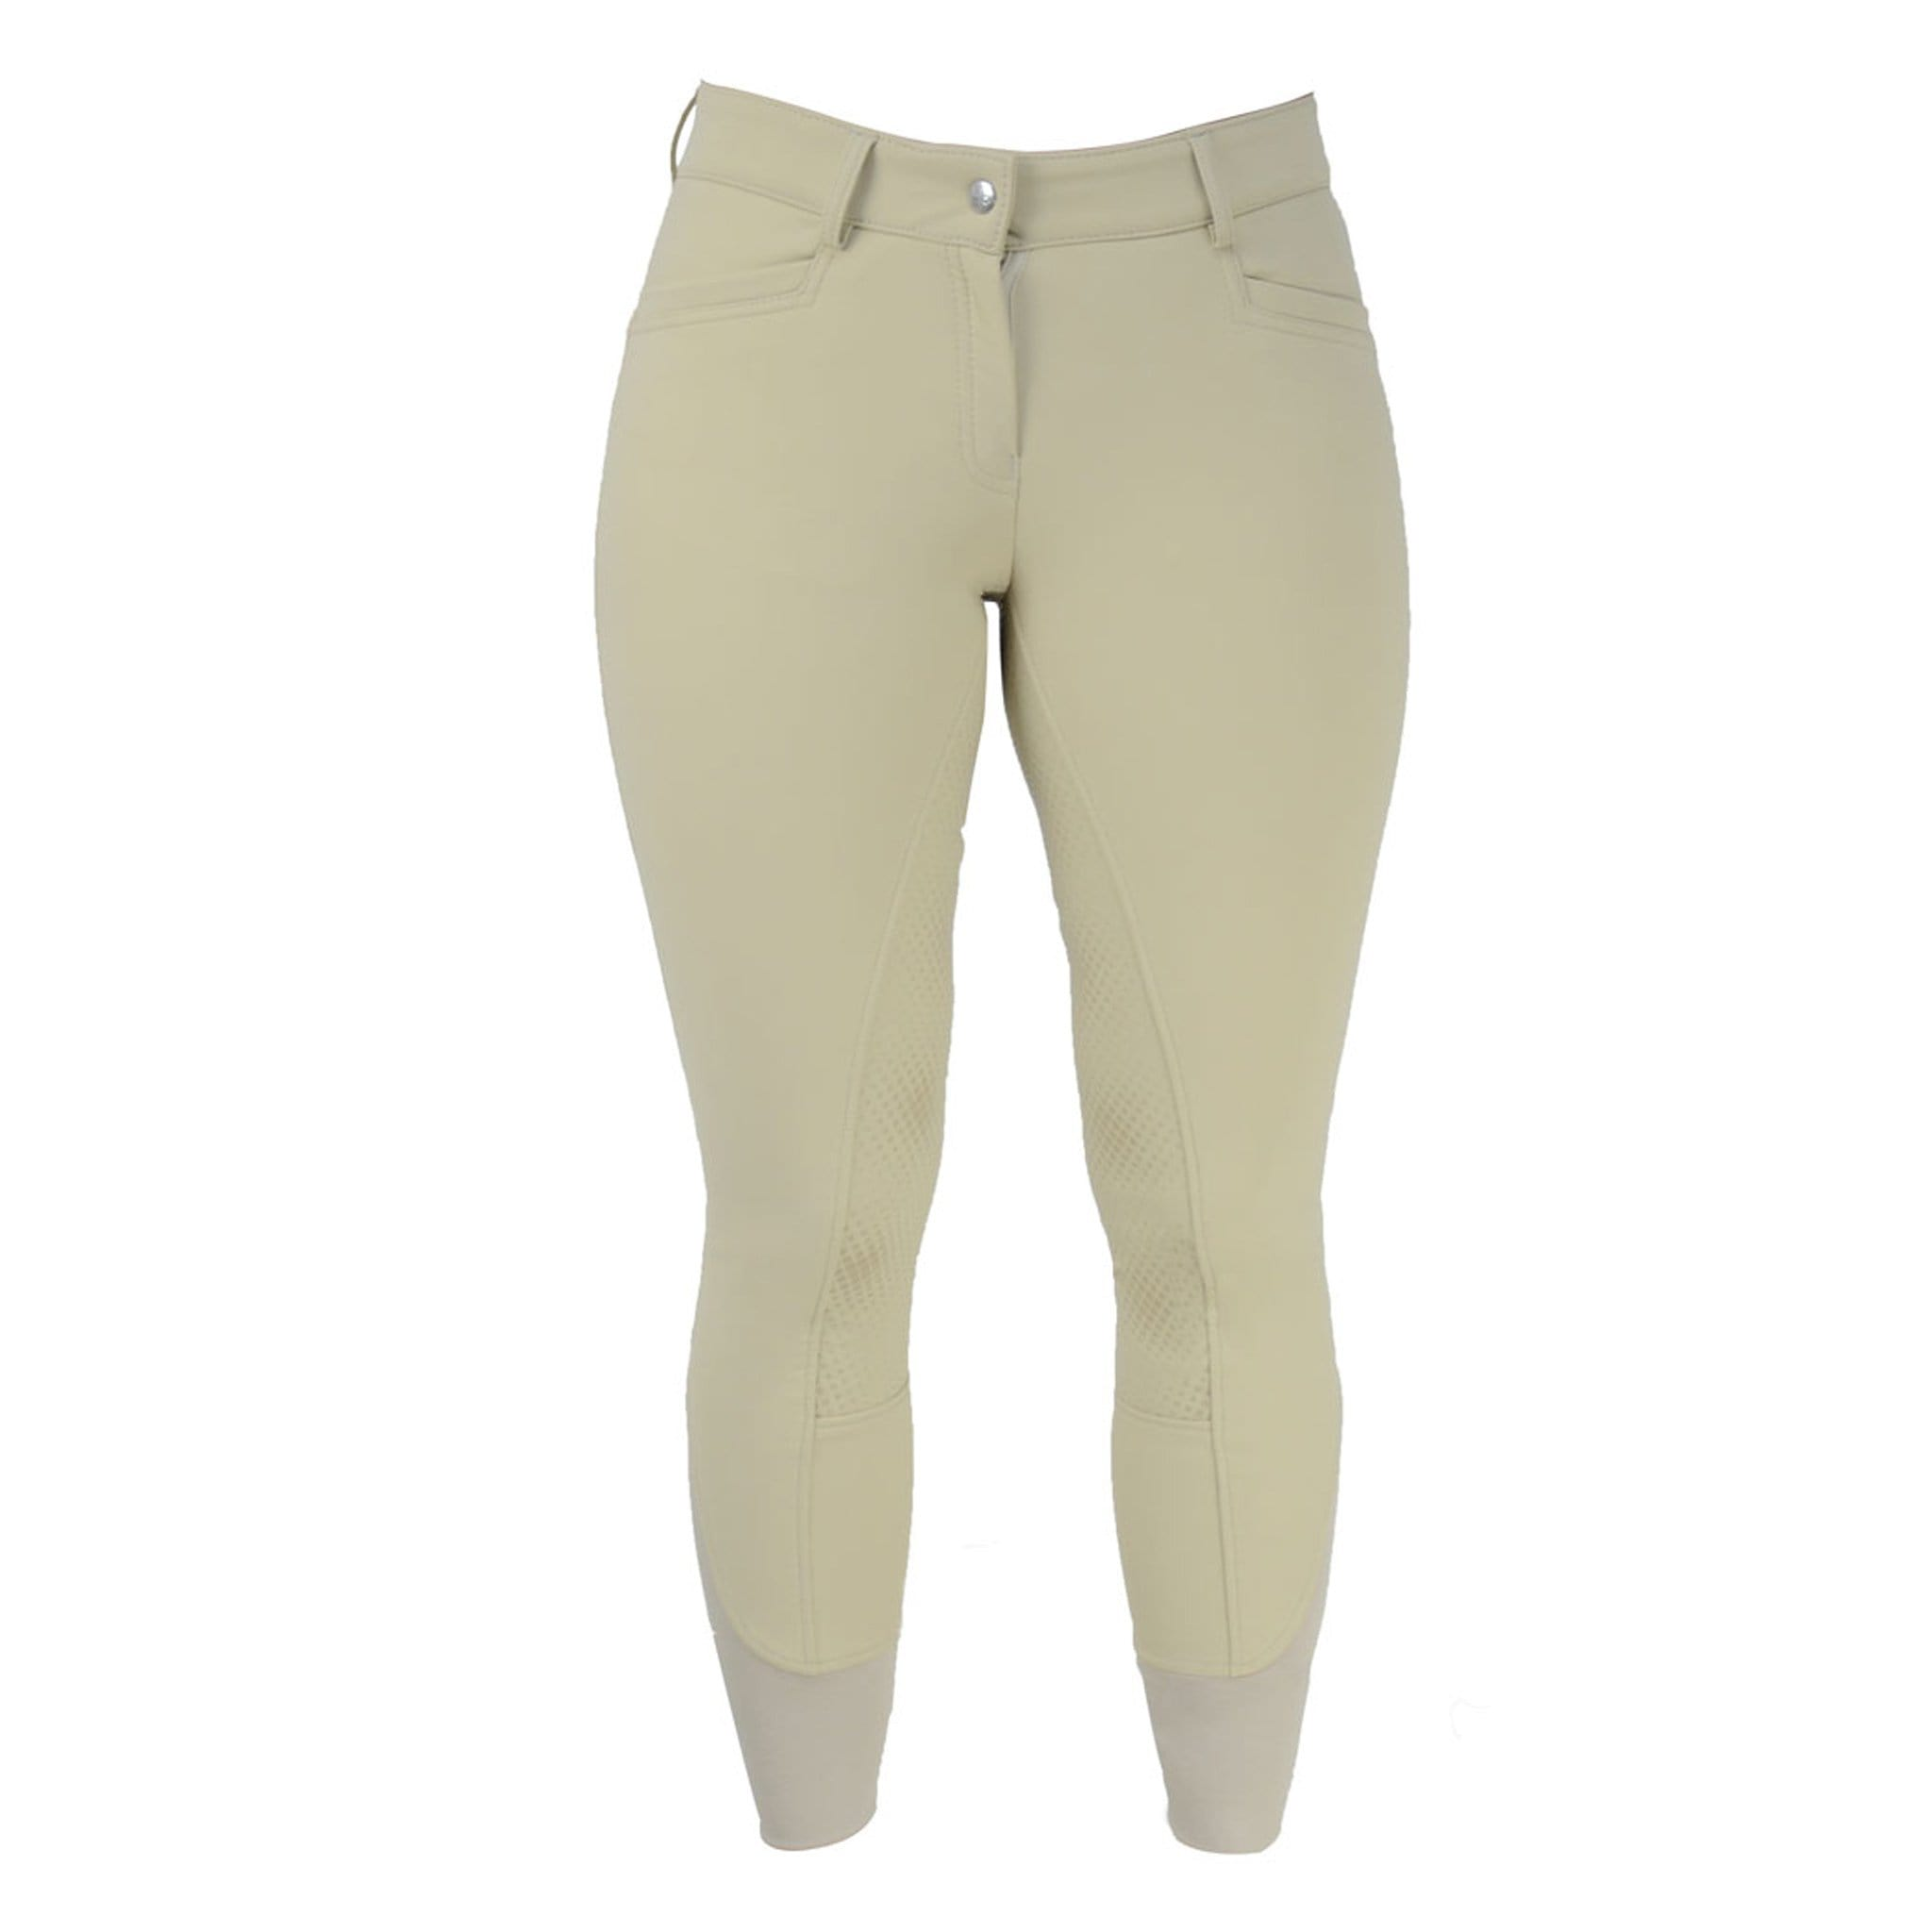 HyPerformance Arctic Softshell Silicone Full Seat Breeches 19560 Beige Front